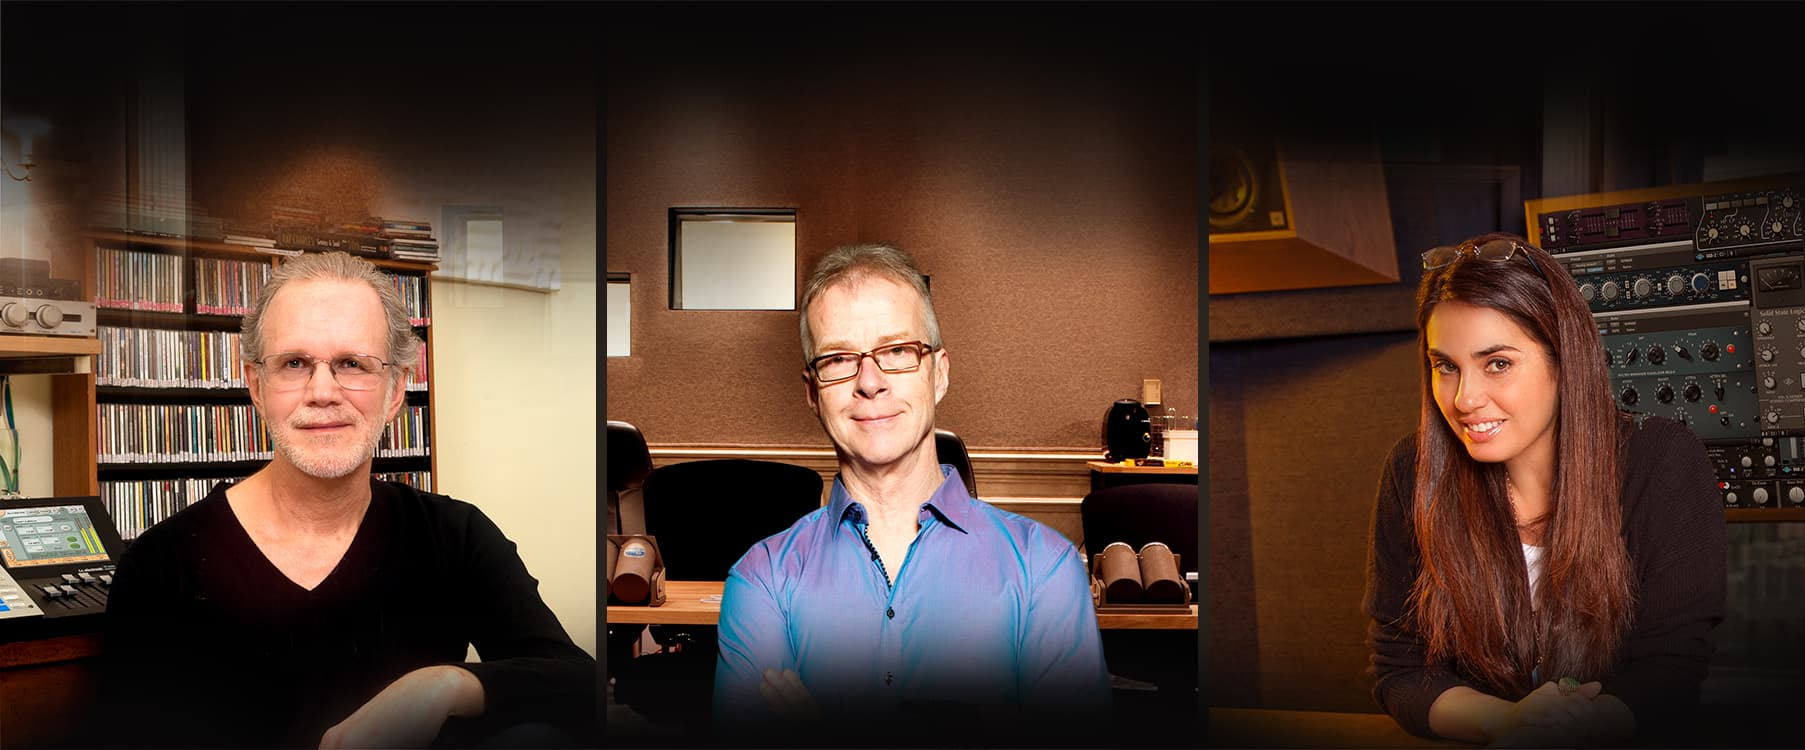 Mastering with the Masters. 7 Questions with Famed Mastering Engineers Emily Lazar, Peter Doell, and Bob Katz